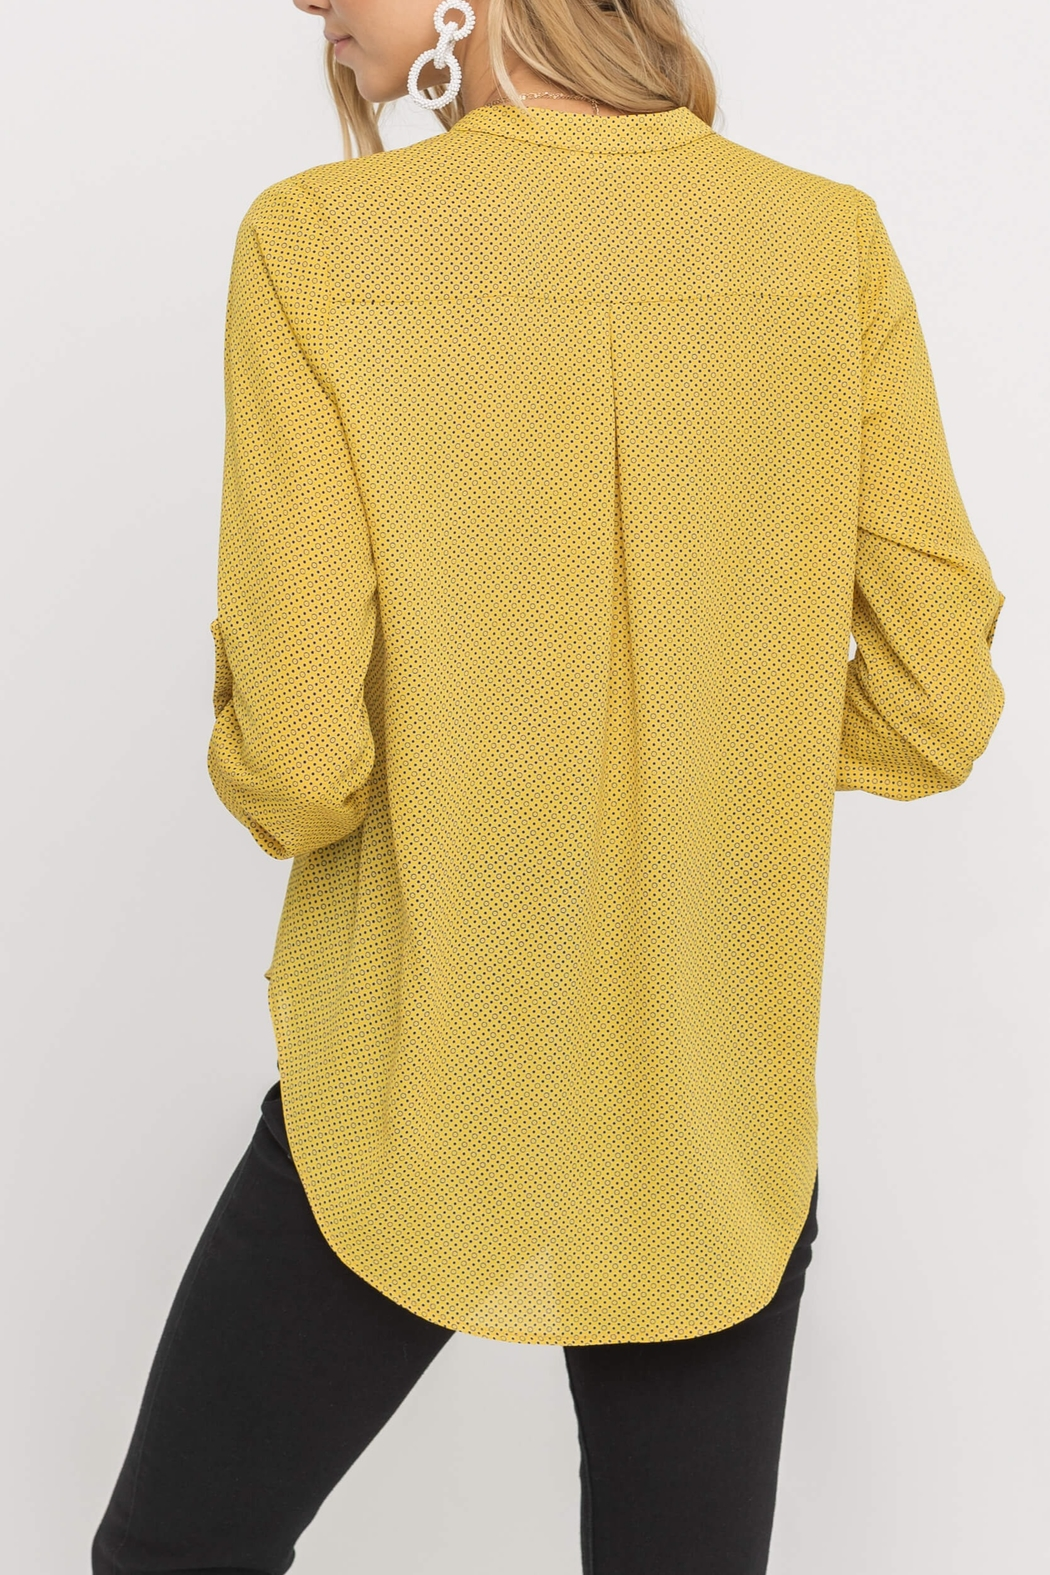 Lush  Printed Yellow Blouse - Front Full Image